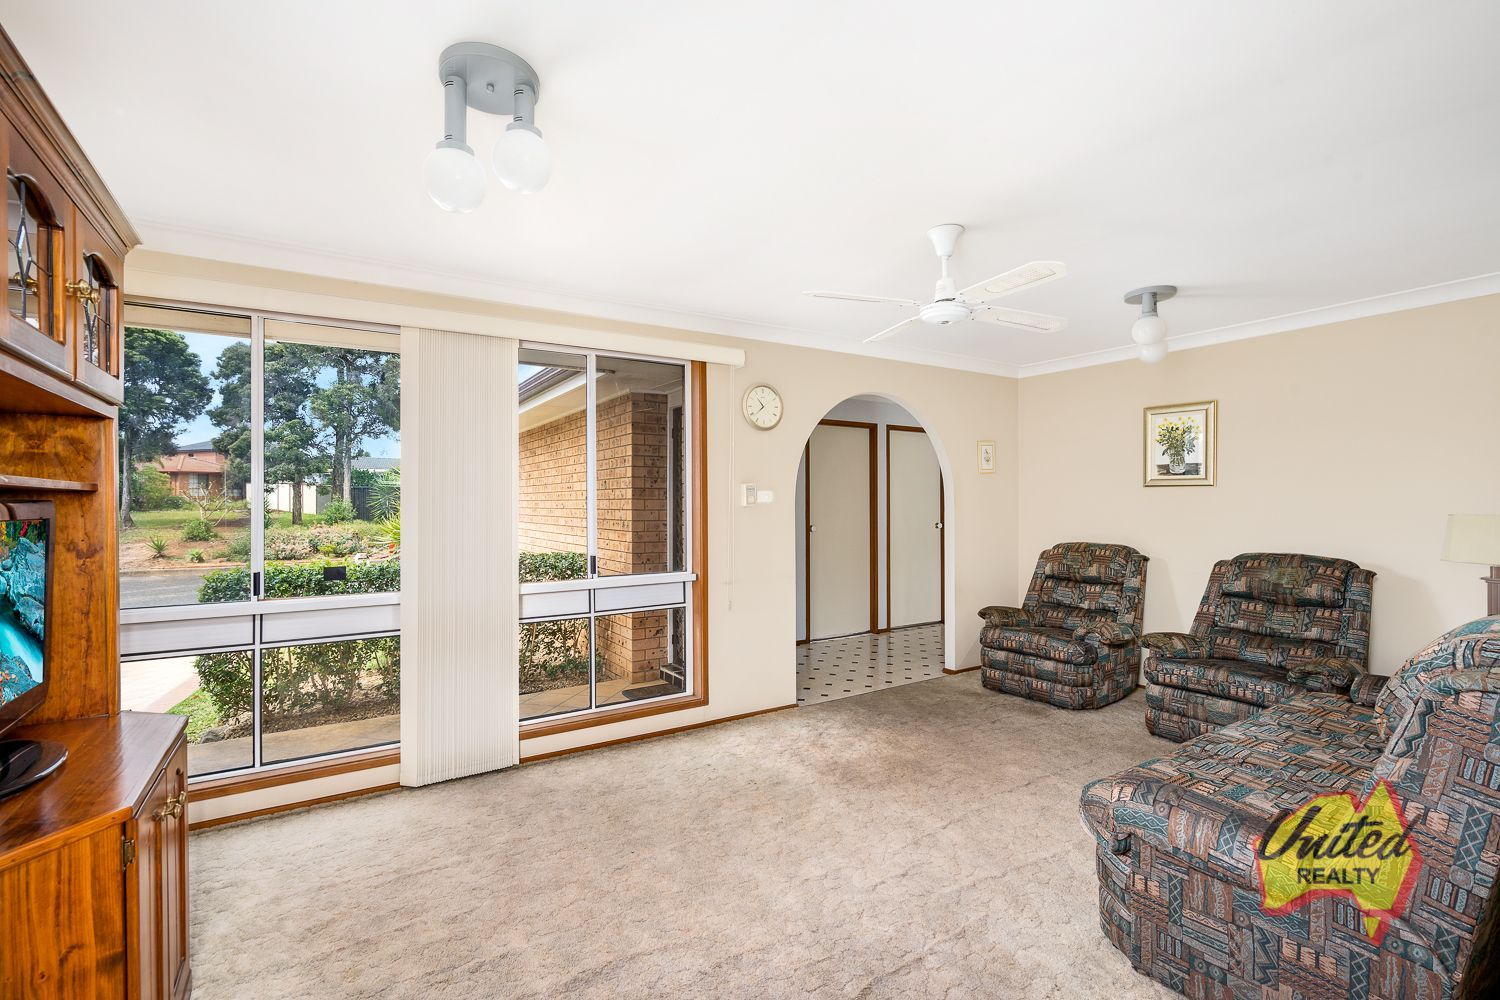 4/30 Devenish Street Greenfield Park 2176